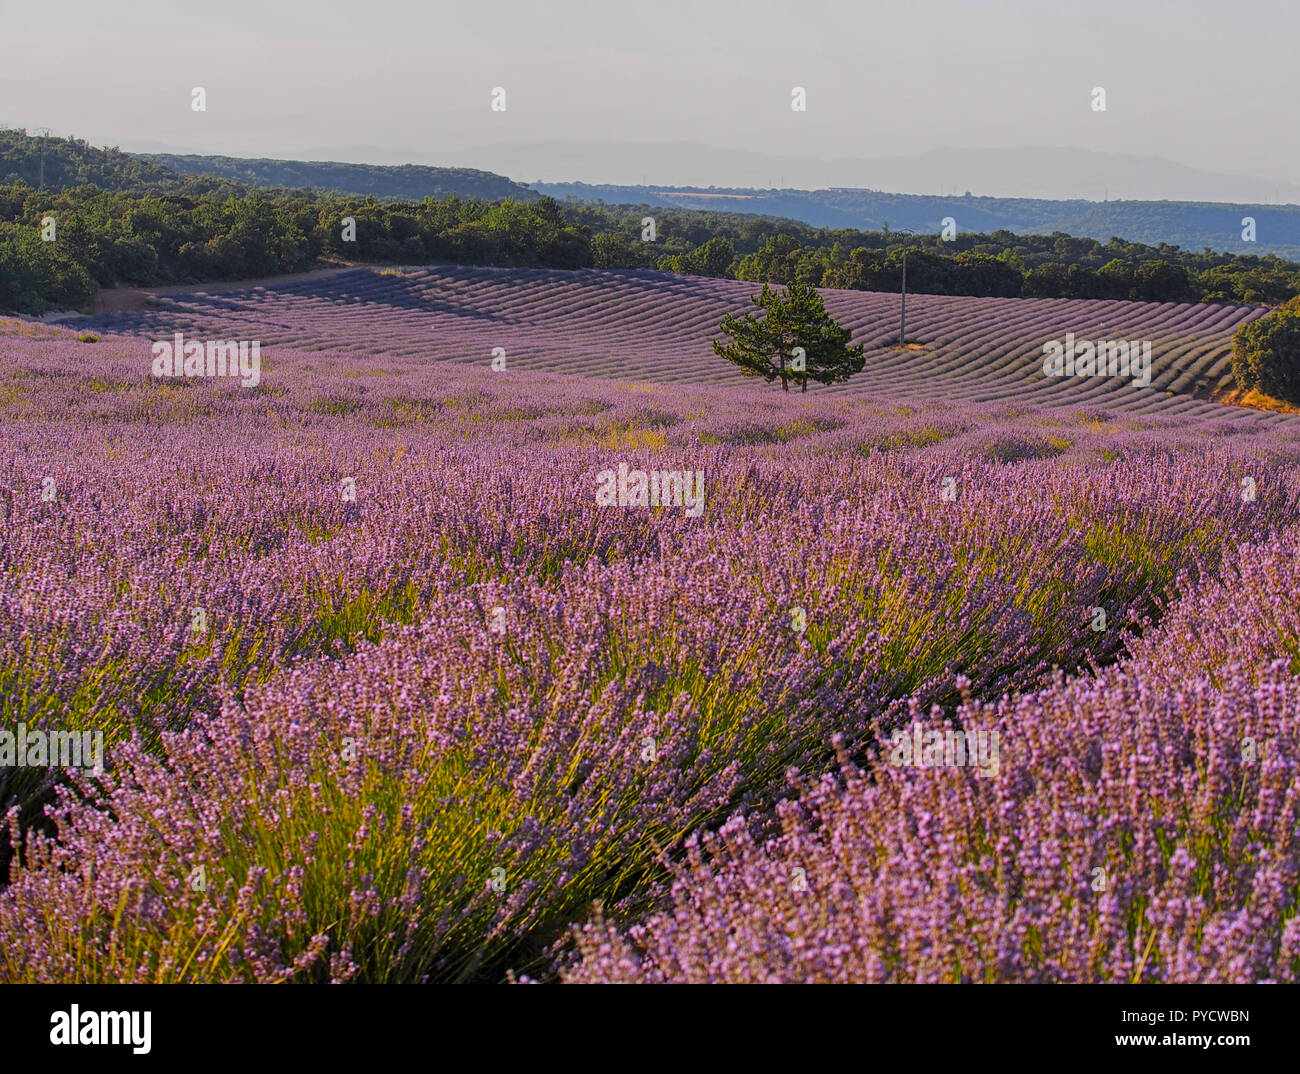 Sunset.Lavender field in sunlight,Spain. Beautiful image of lavender field.Lavender flower field, image for natural background.Very nice view of the l - Stock Image